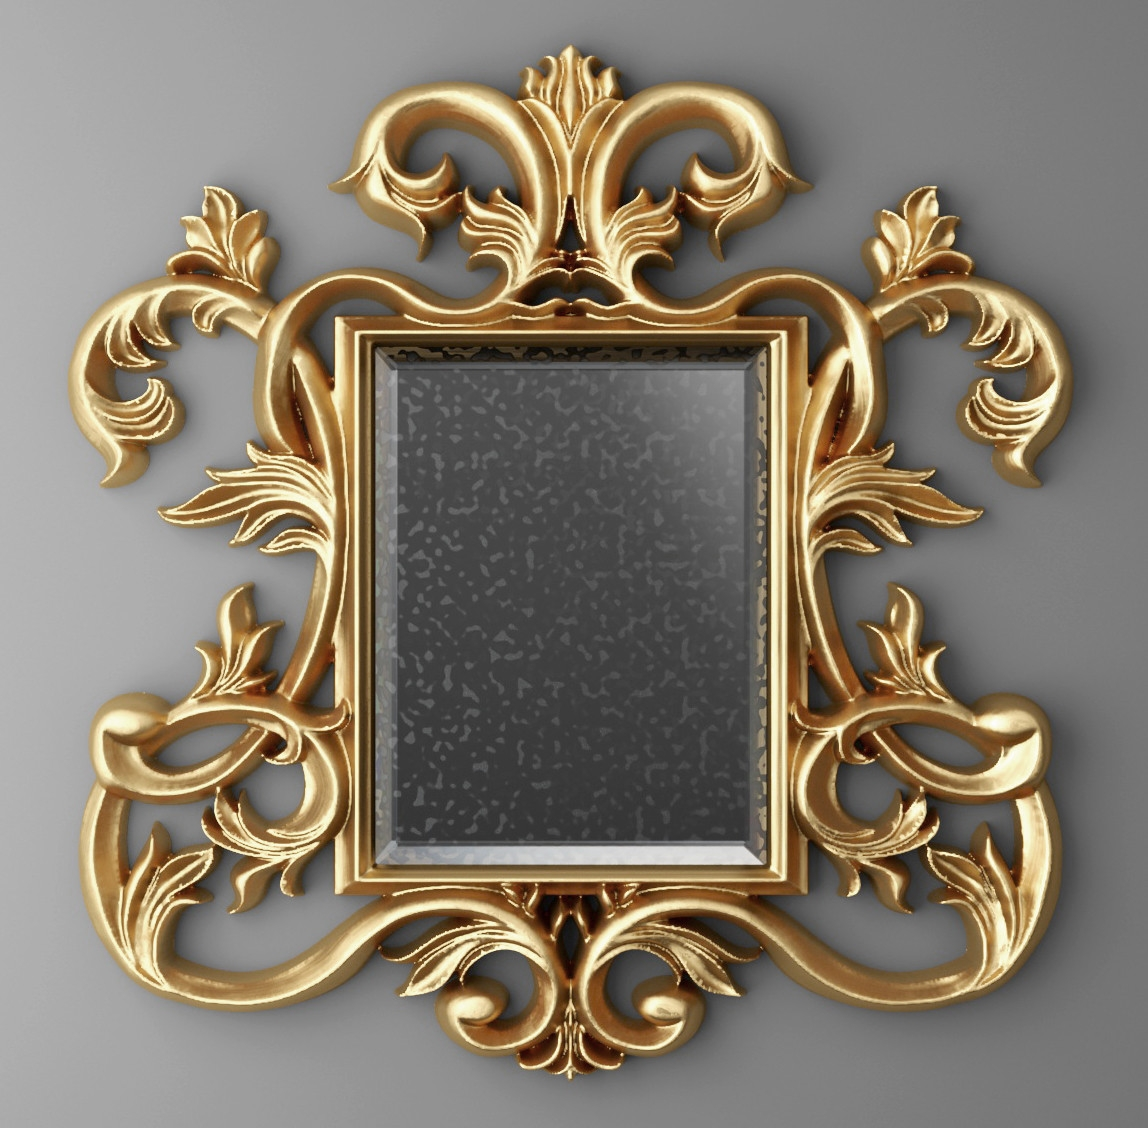 Baroque Frame Mirror Model Pertaining To Baroque Mirror Frame (Image 4 of 15)